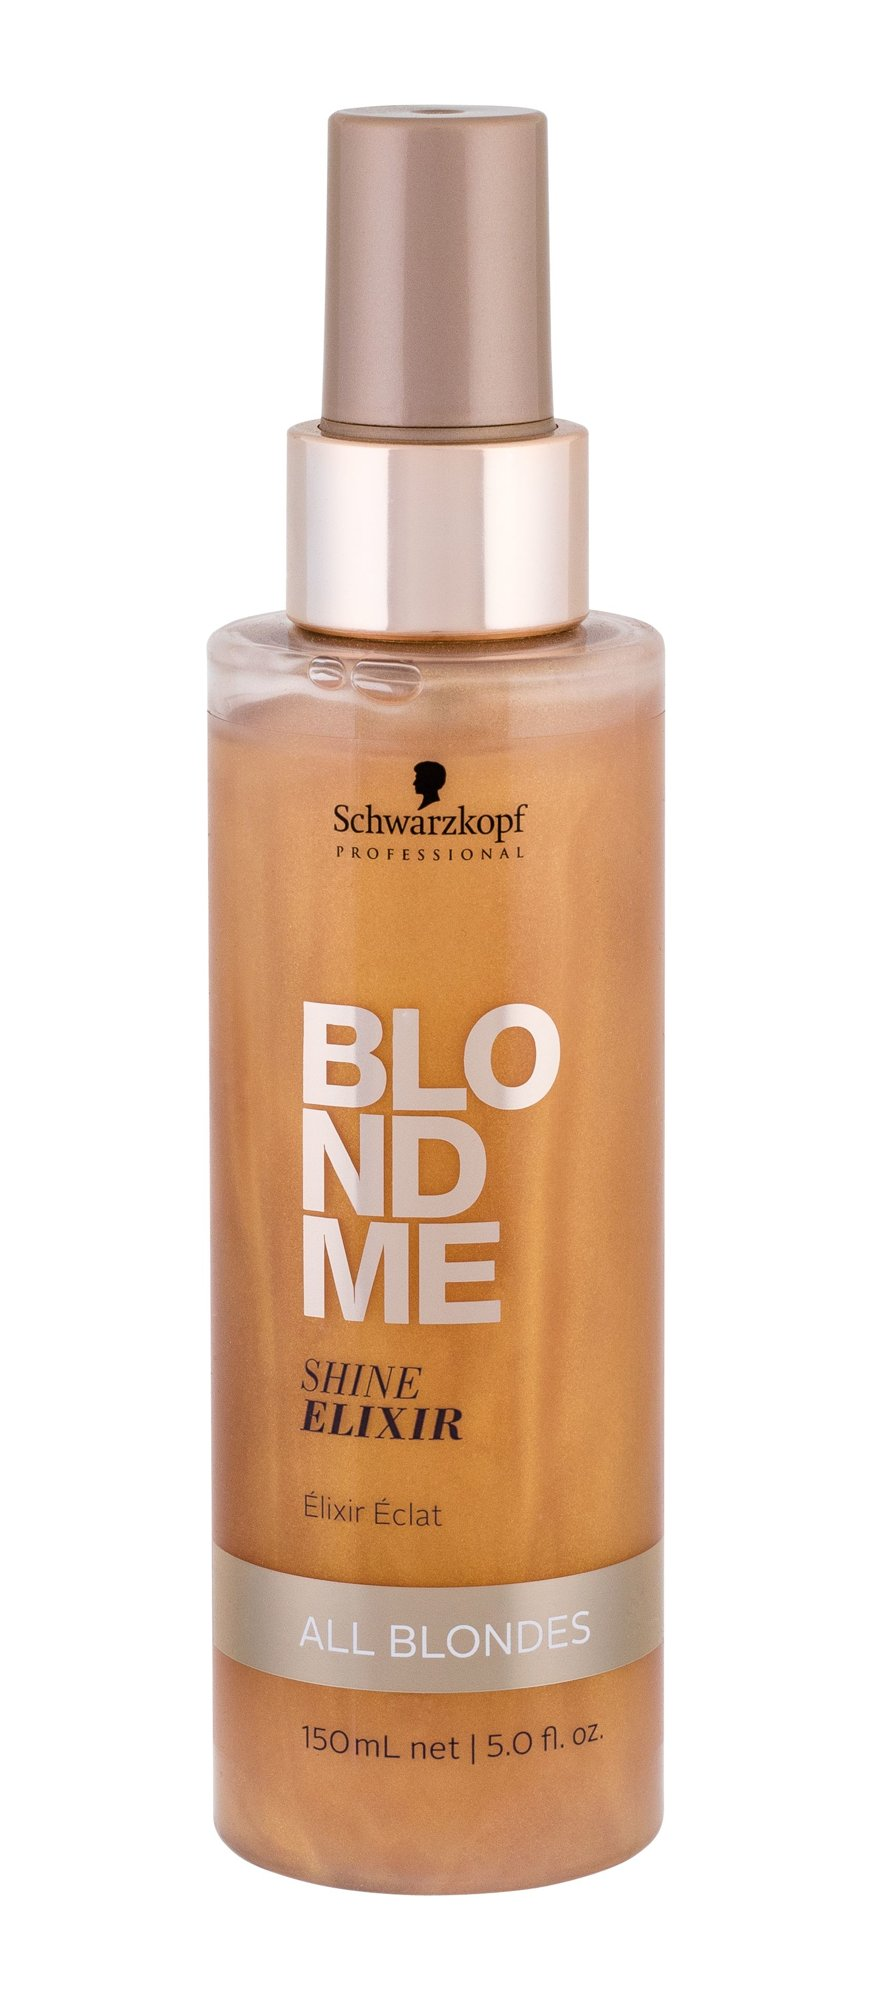 Schwarzkopf Blond Me Hair Oils and Serum 150ml